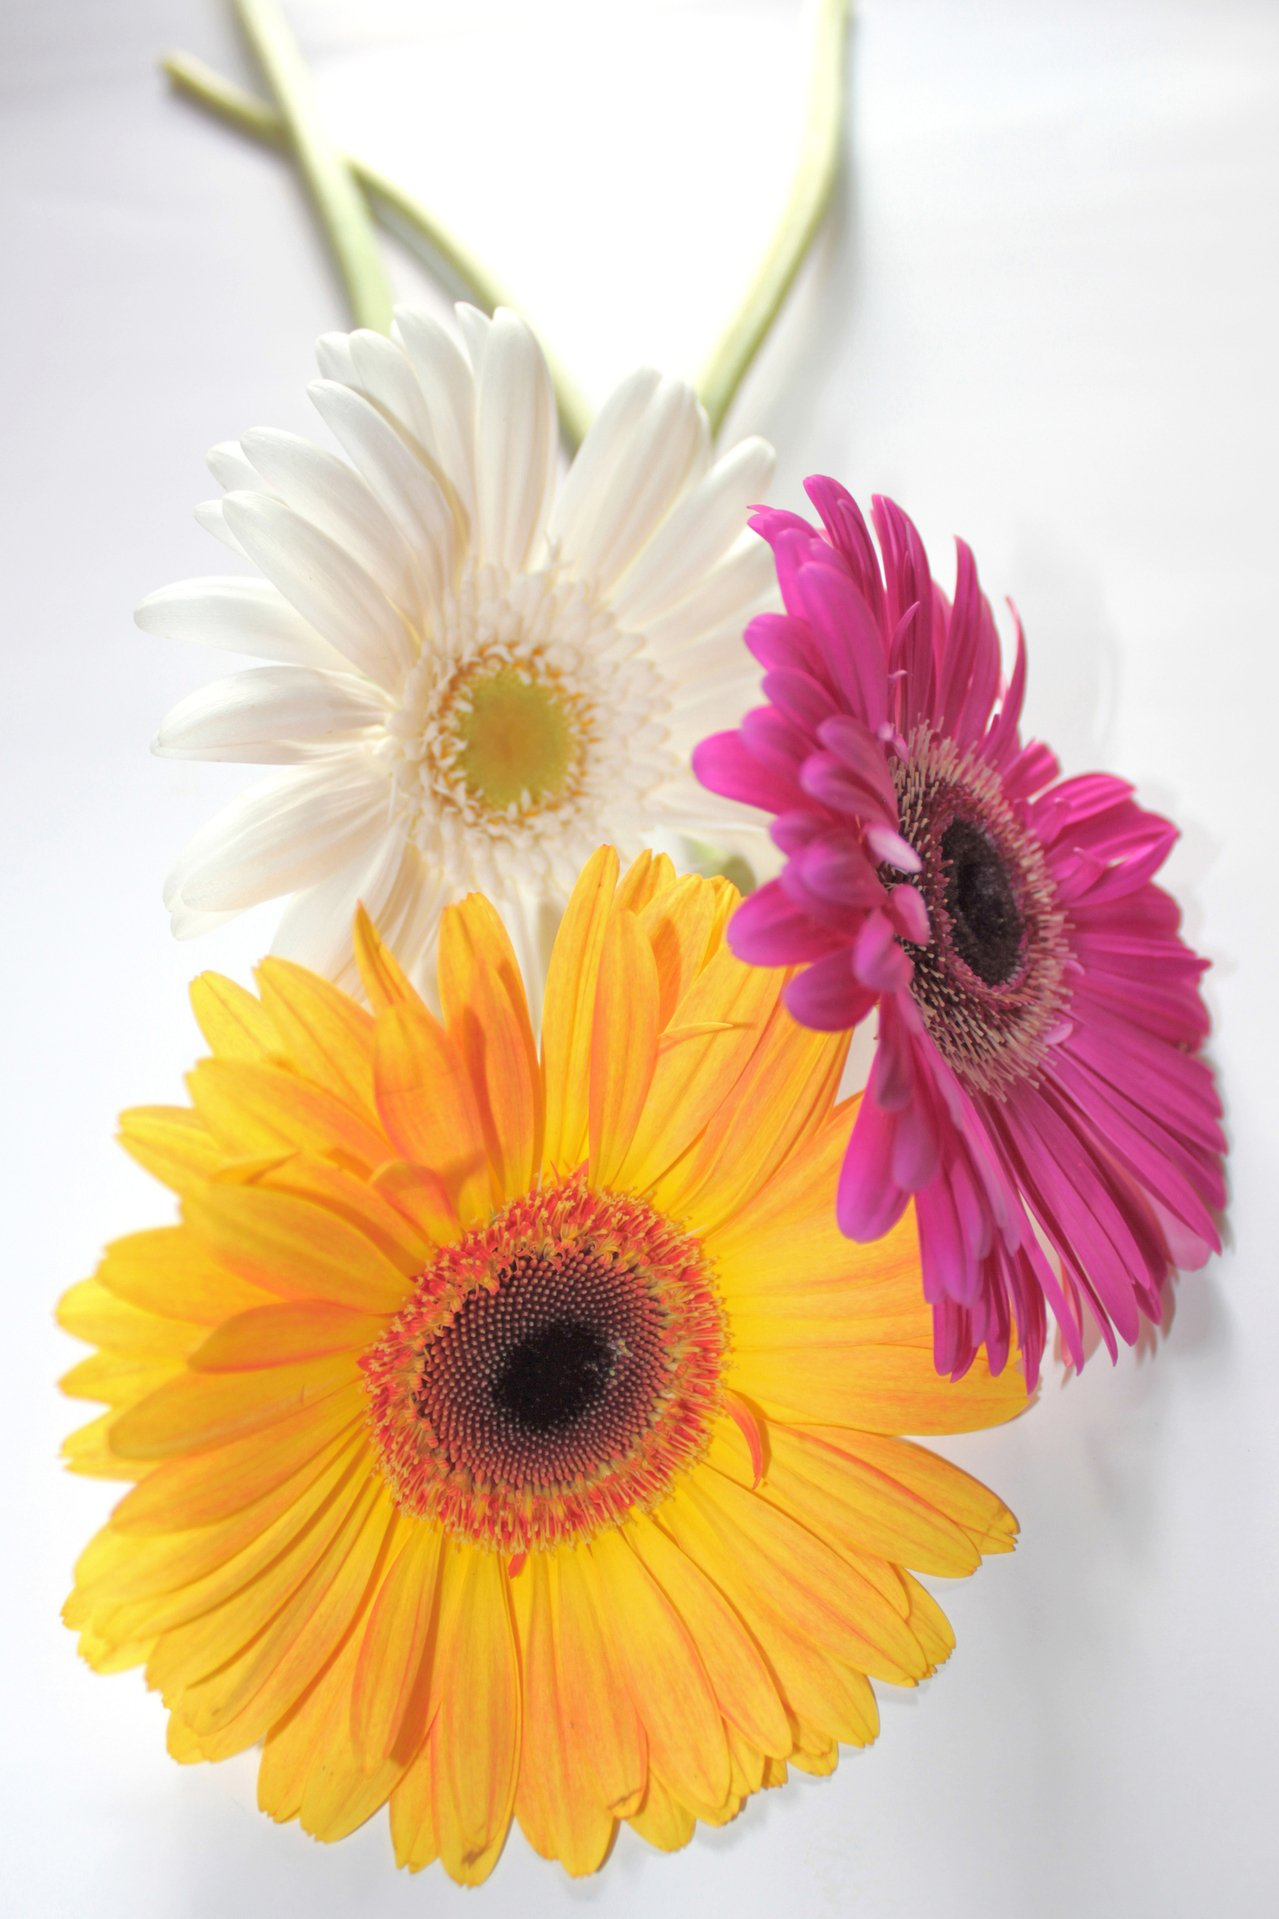 Interesting facts about Gerbera Daisies